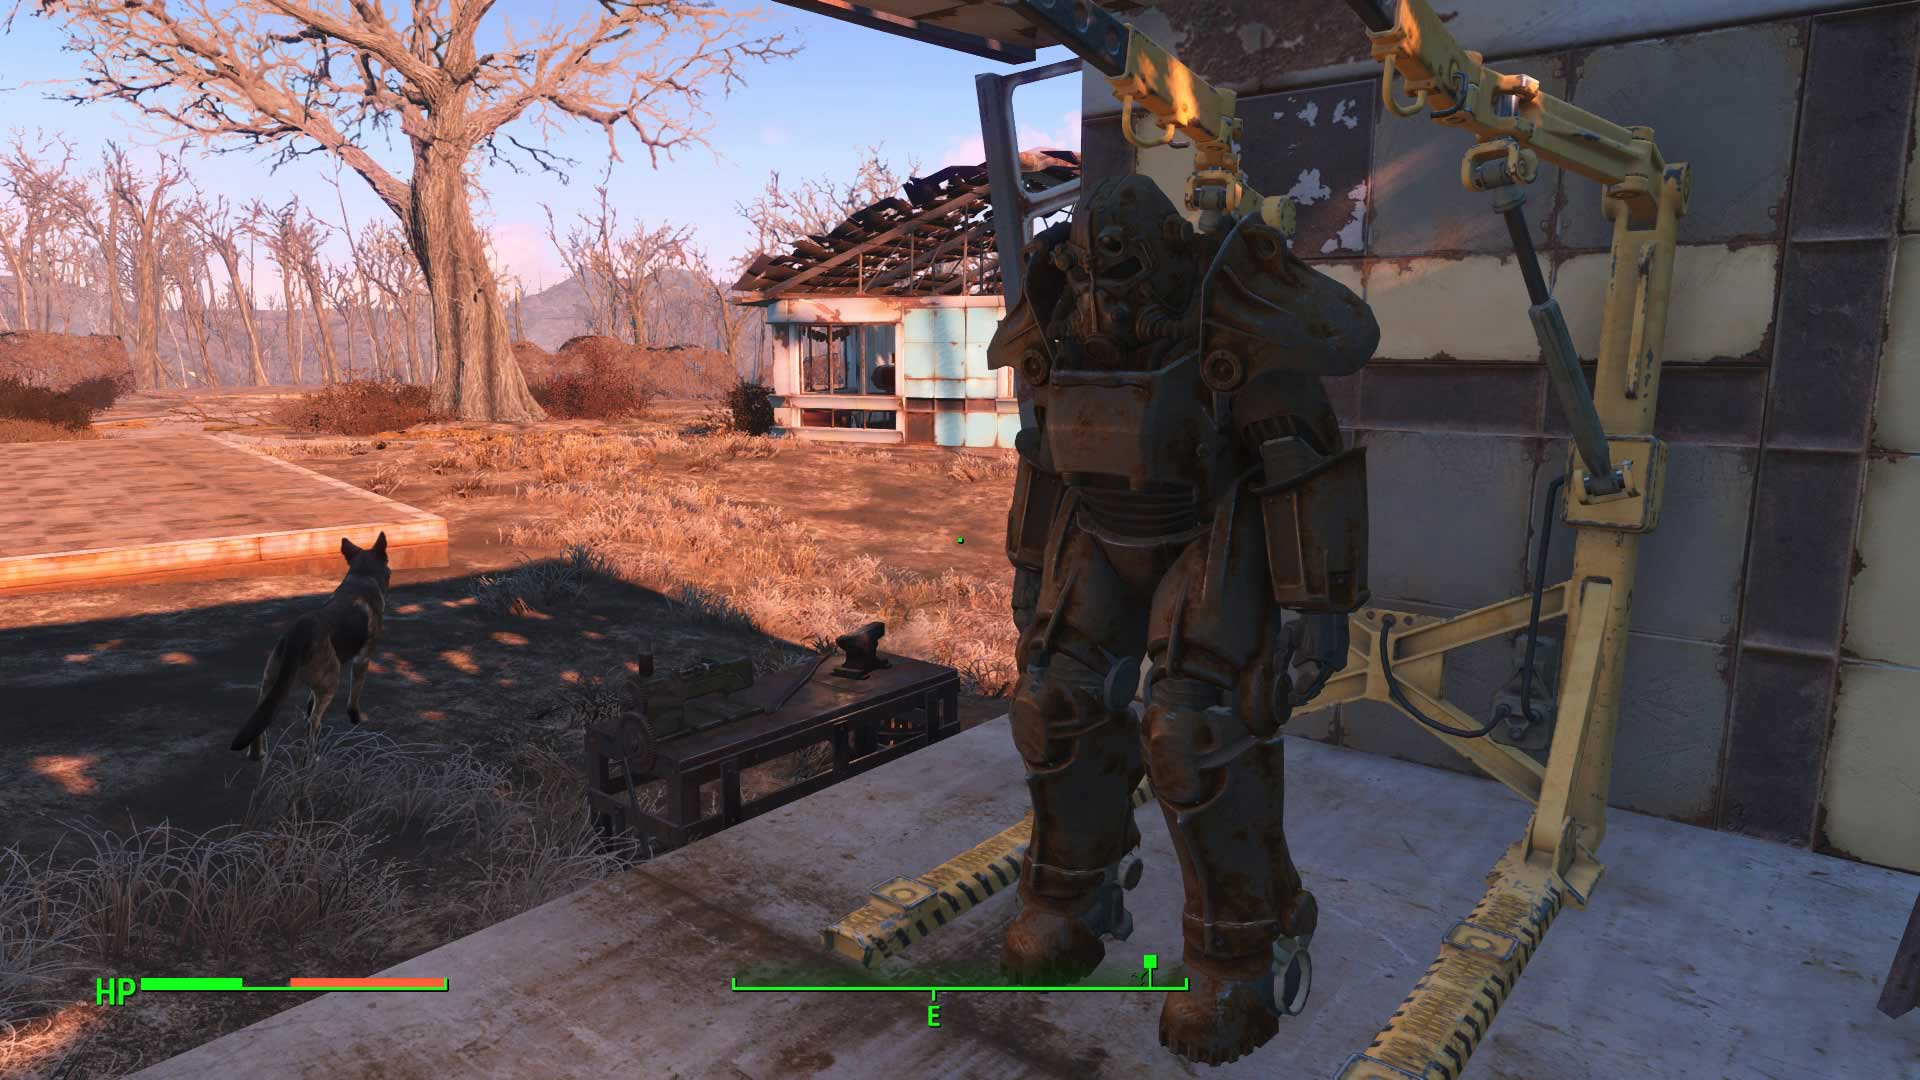 fallout_4_guide_crafting_base_building_sanctuary_quest_1